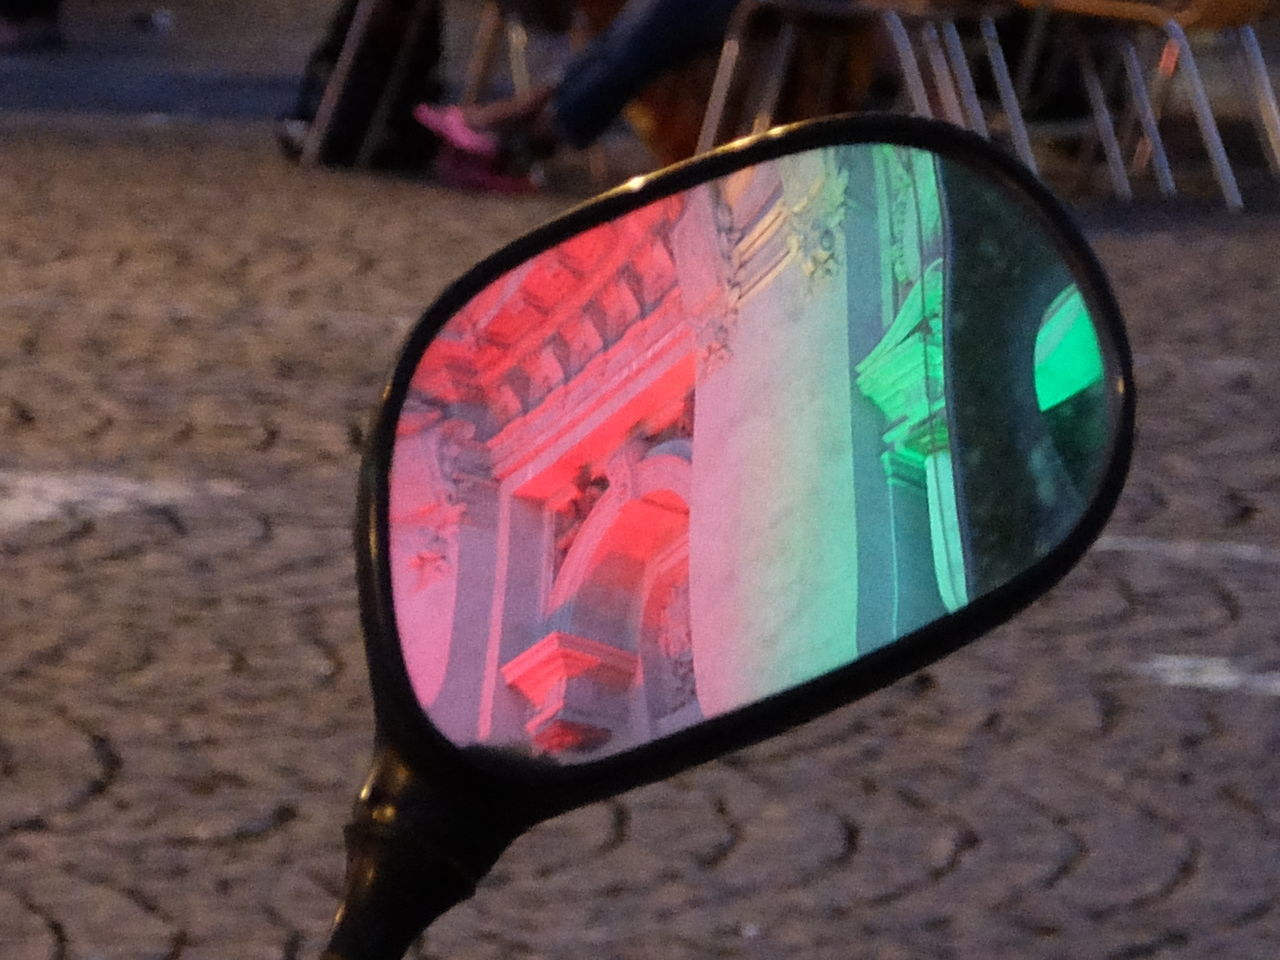 Euro 2016 Green & Red Mirror Porto Portugal Reflex Town Hall Streetphotography_fujifilm Fine Art Photography Colour Of Life